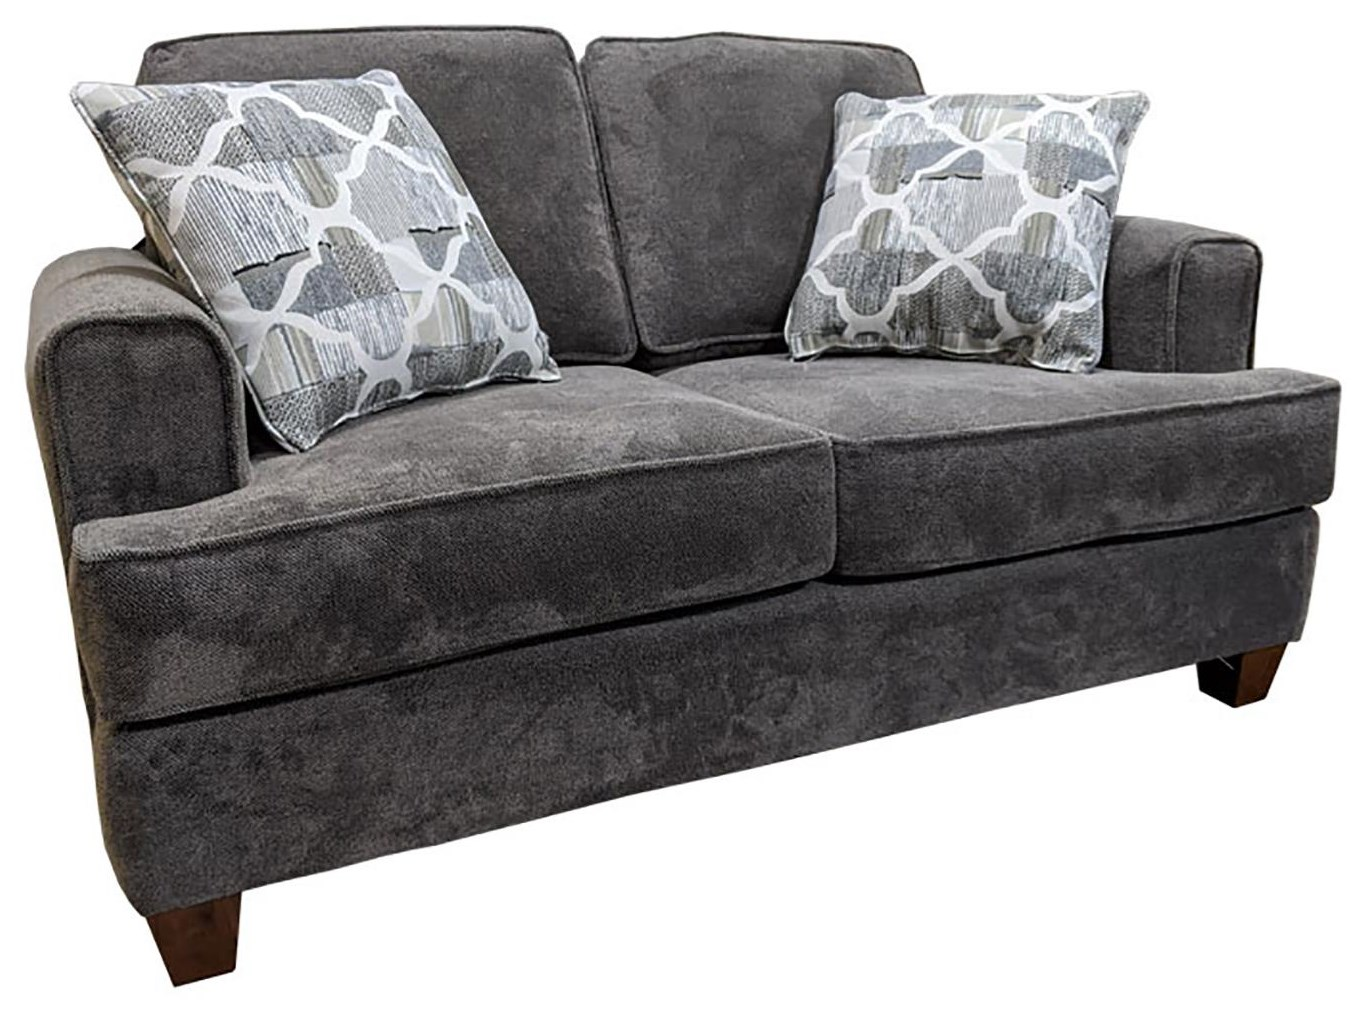 20469 Loveseat by Sunset Home at Sadler's Home Furnishings